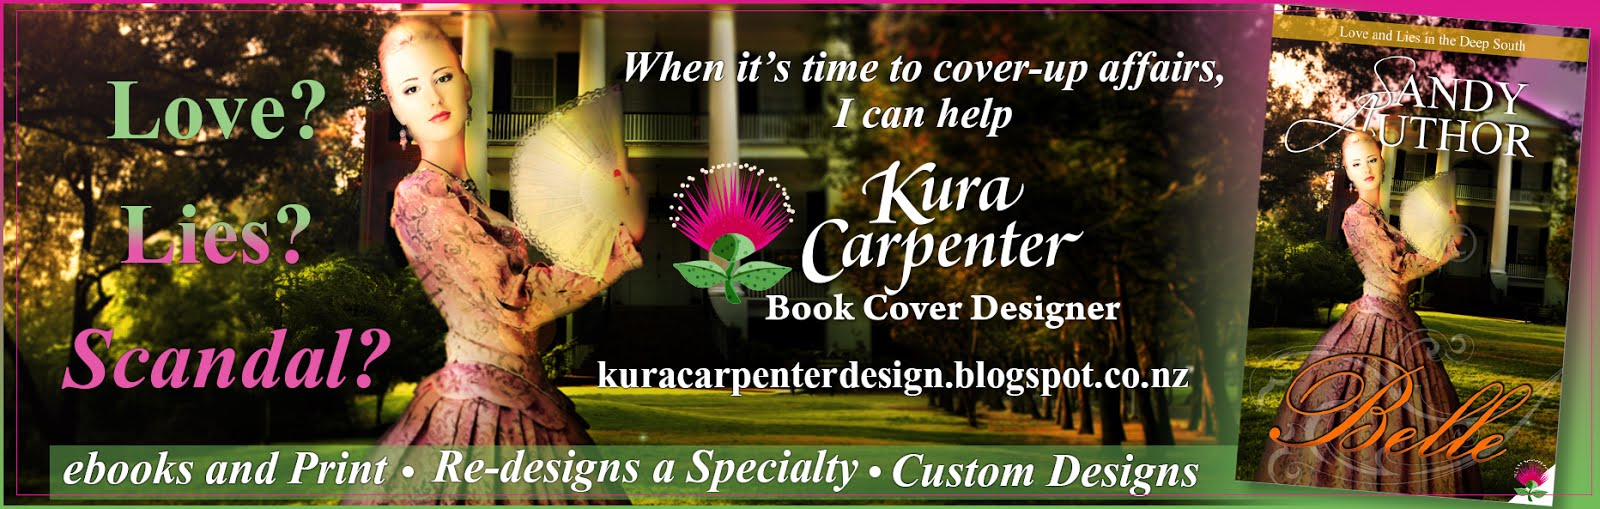 Kura Carpenter Book Cover Design